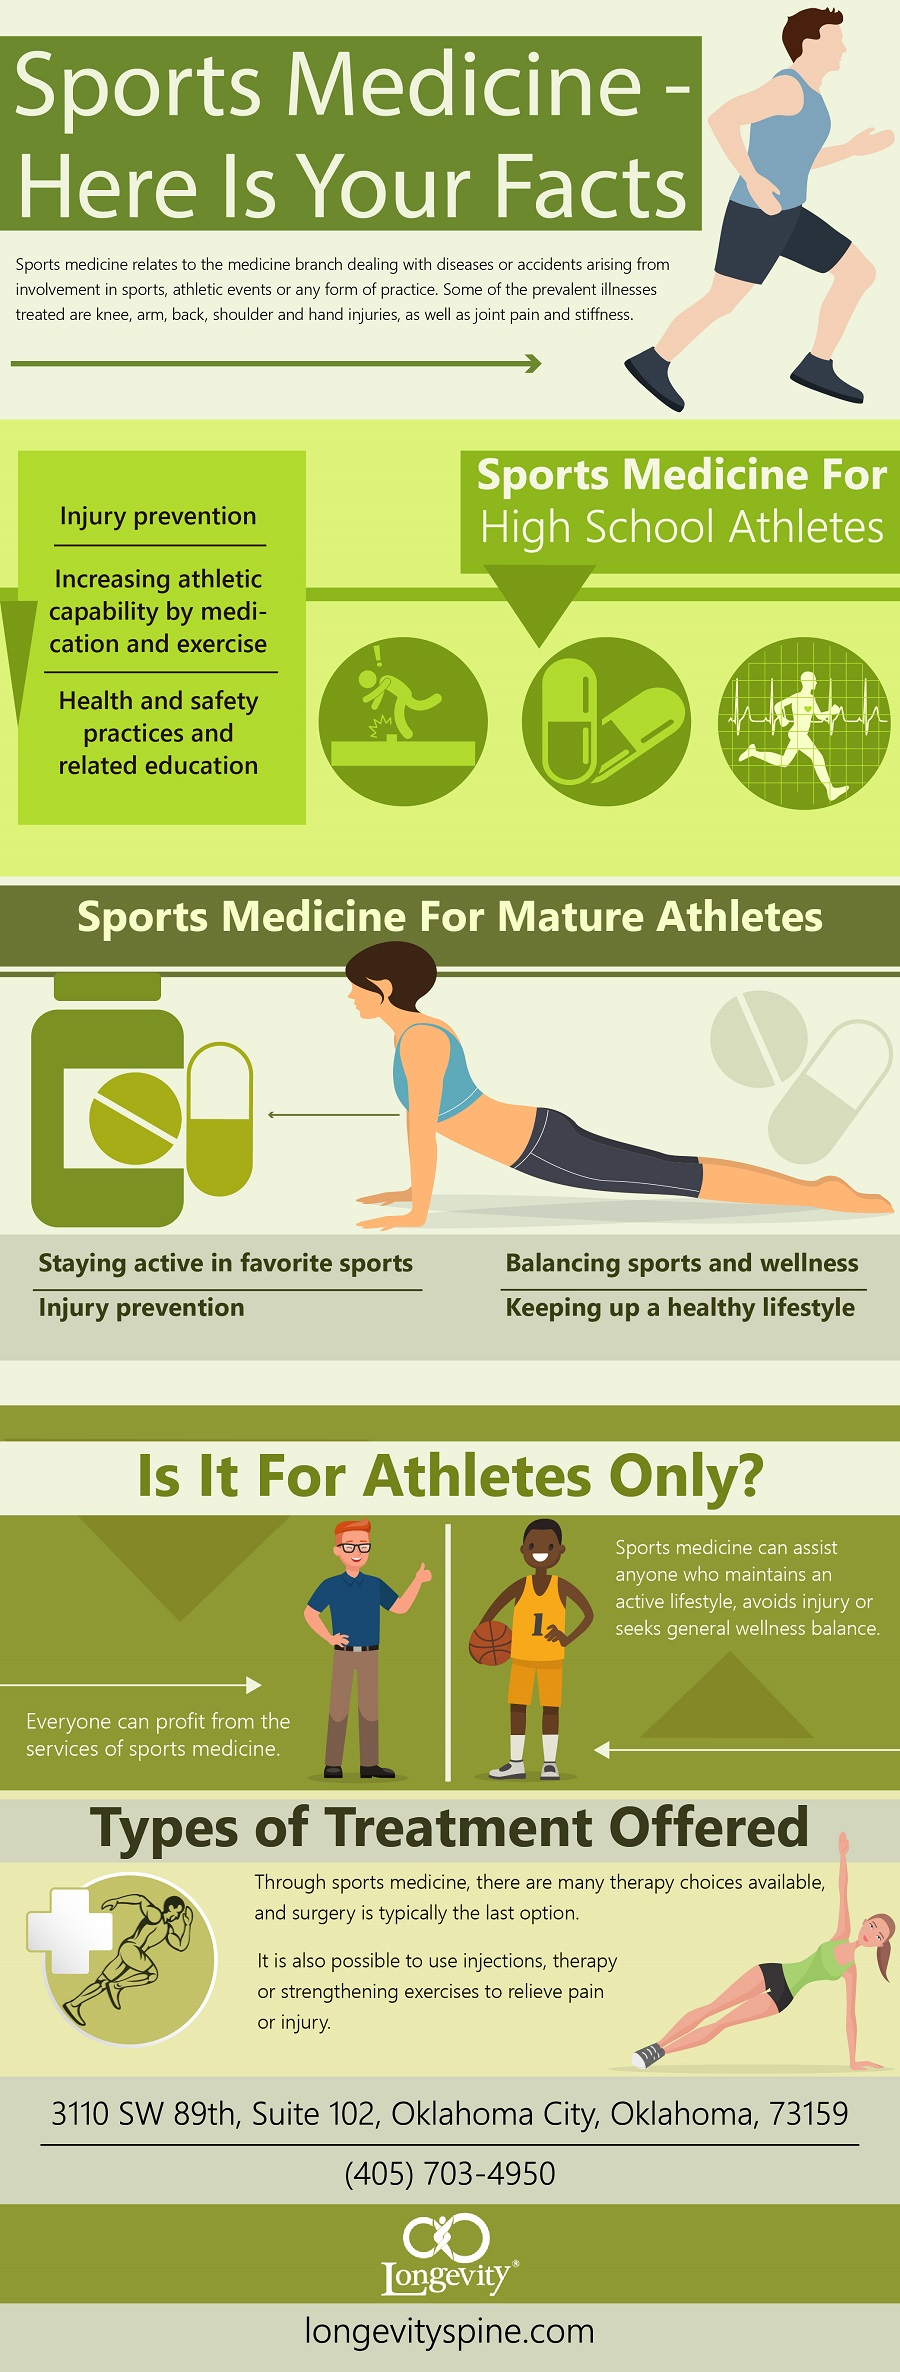 sports medicine facts infographic